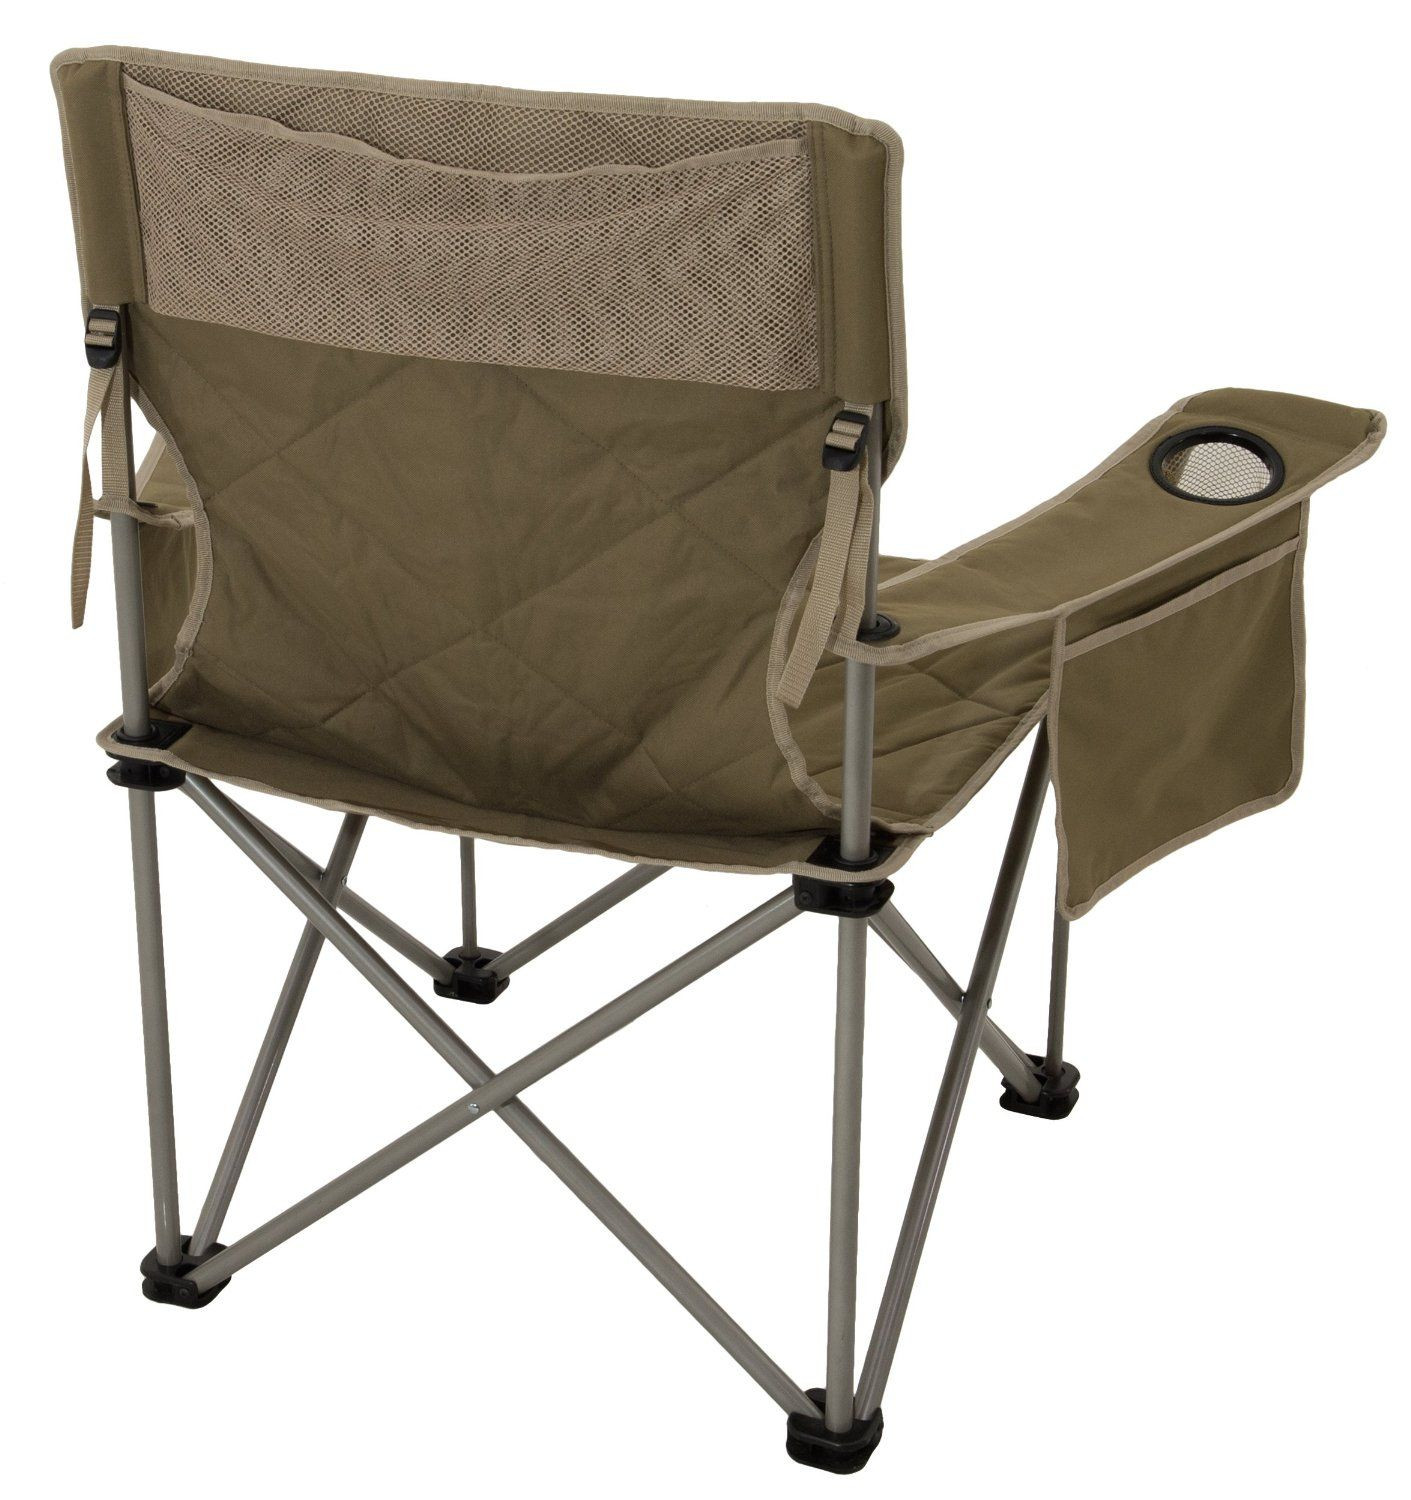 Camping Chairs For Heavy People Heavy Duty Camping Chair